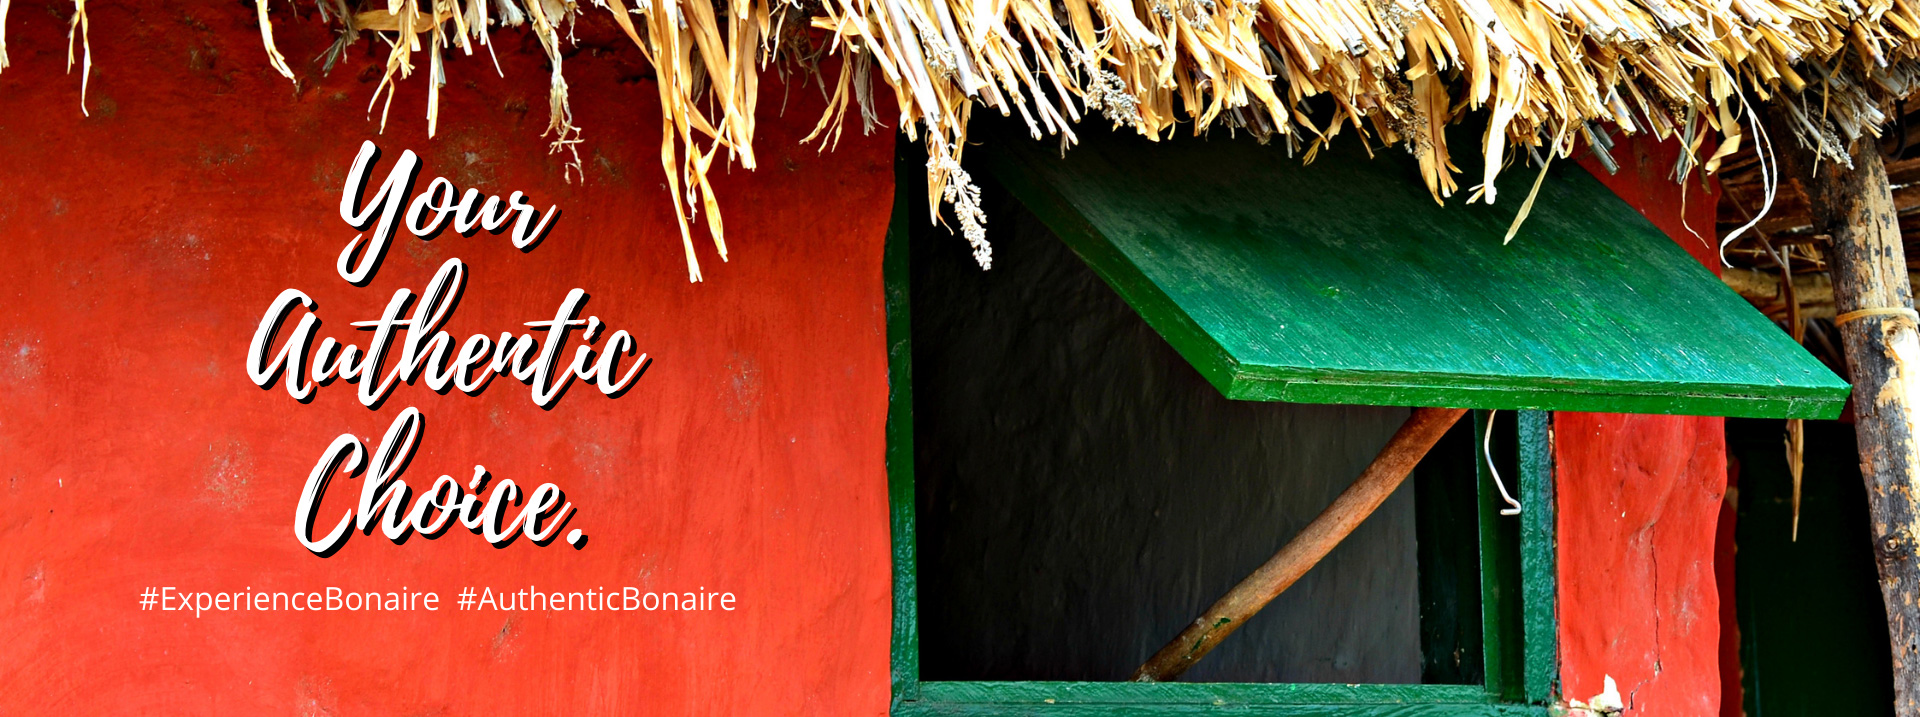 Your Authentic Choice #ExperienceBonaire #Authentic Bonaire